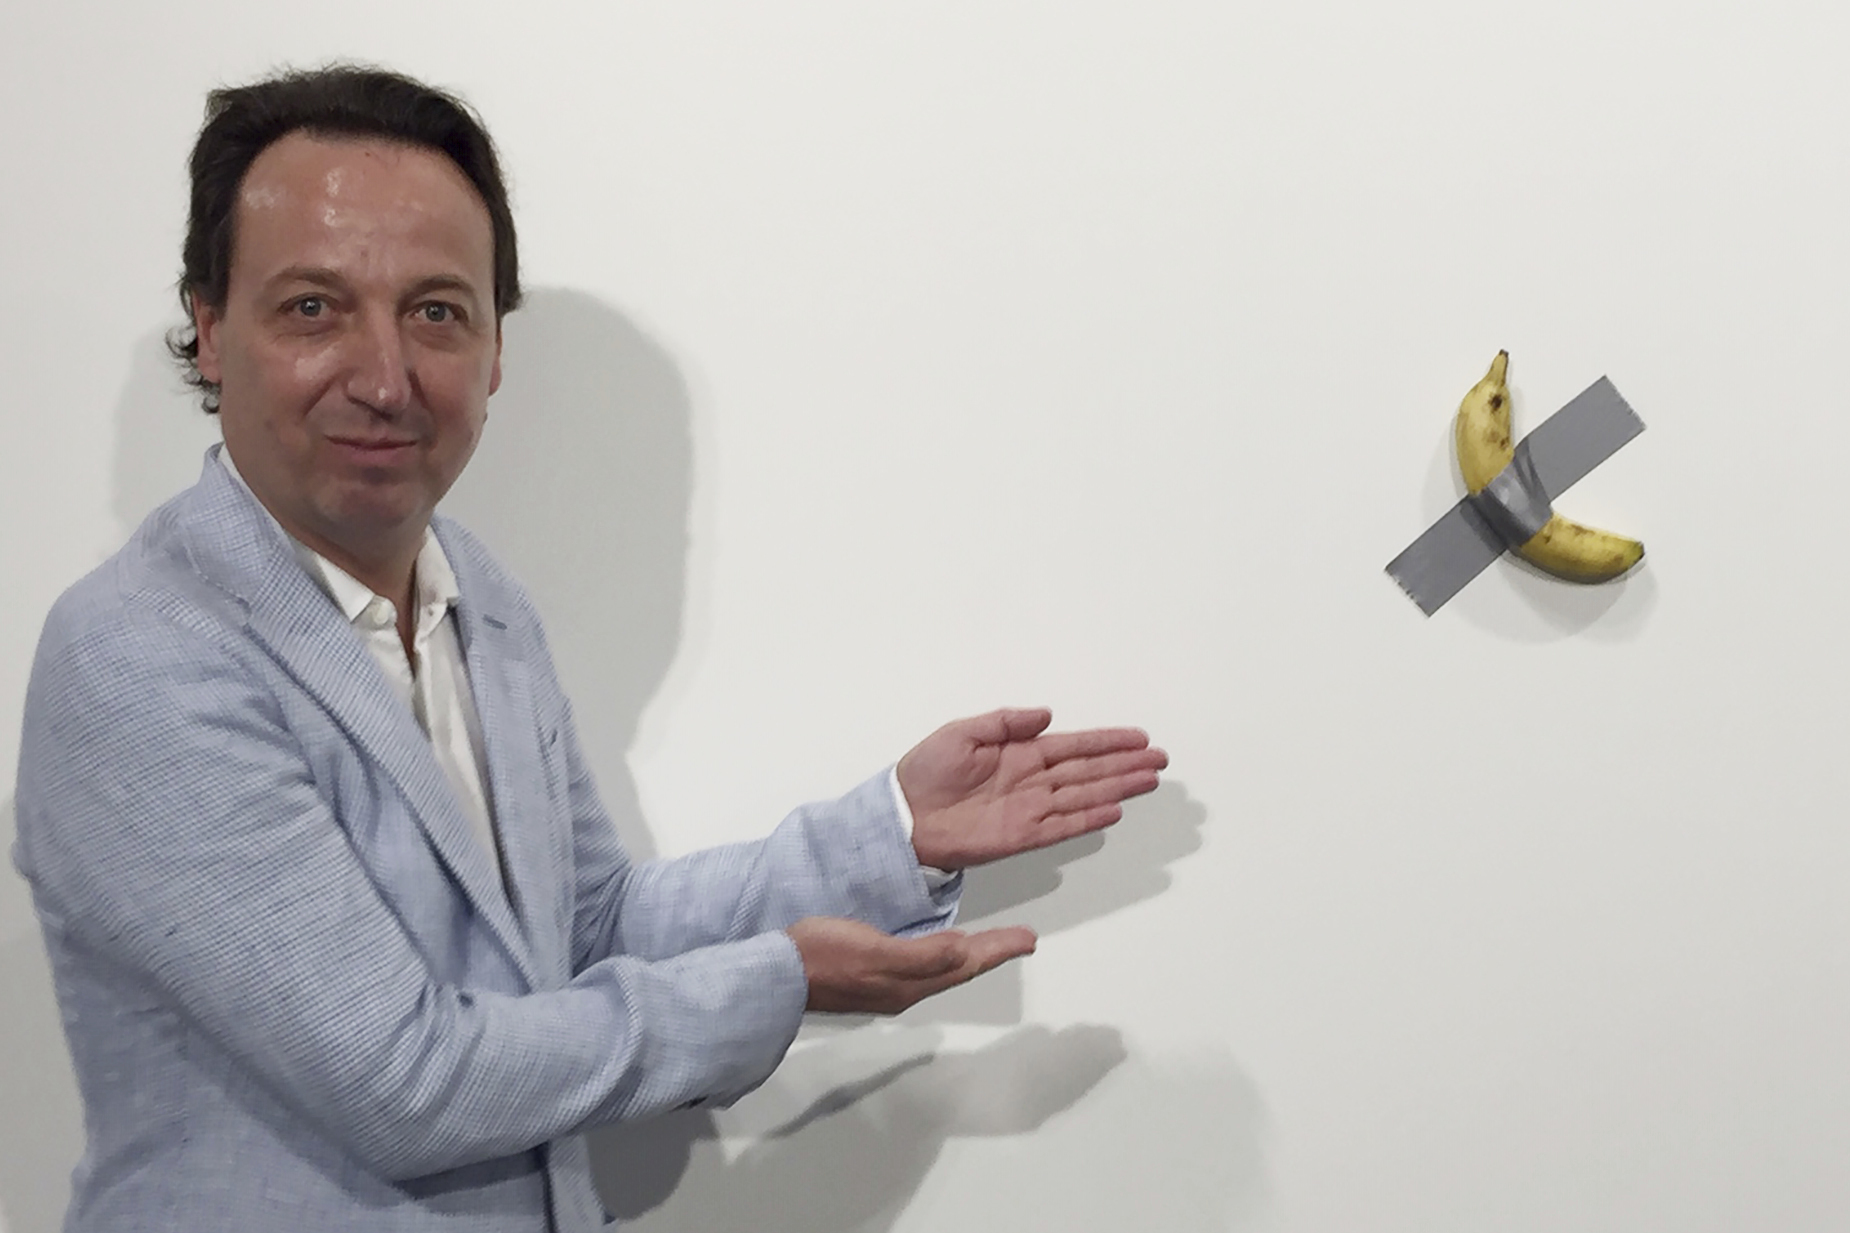 Banana, duct tape add up to $150,000 at Art Basel Miami | 8News